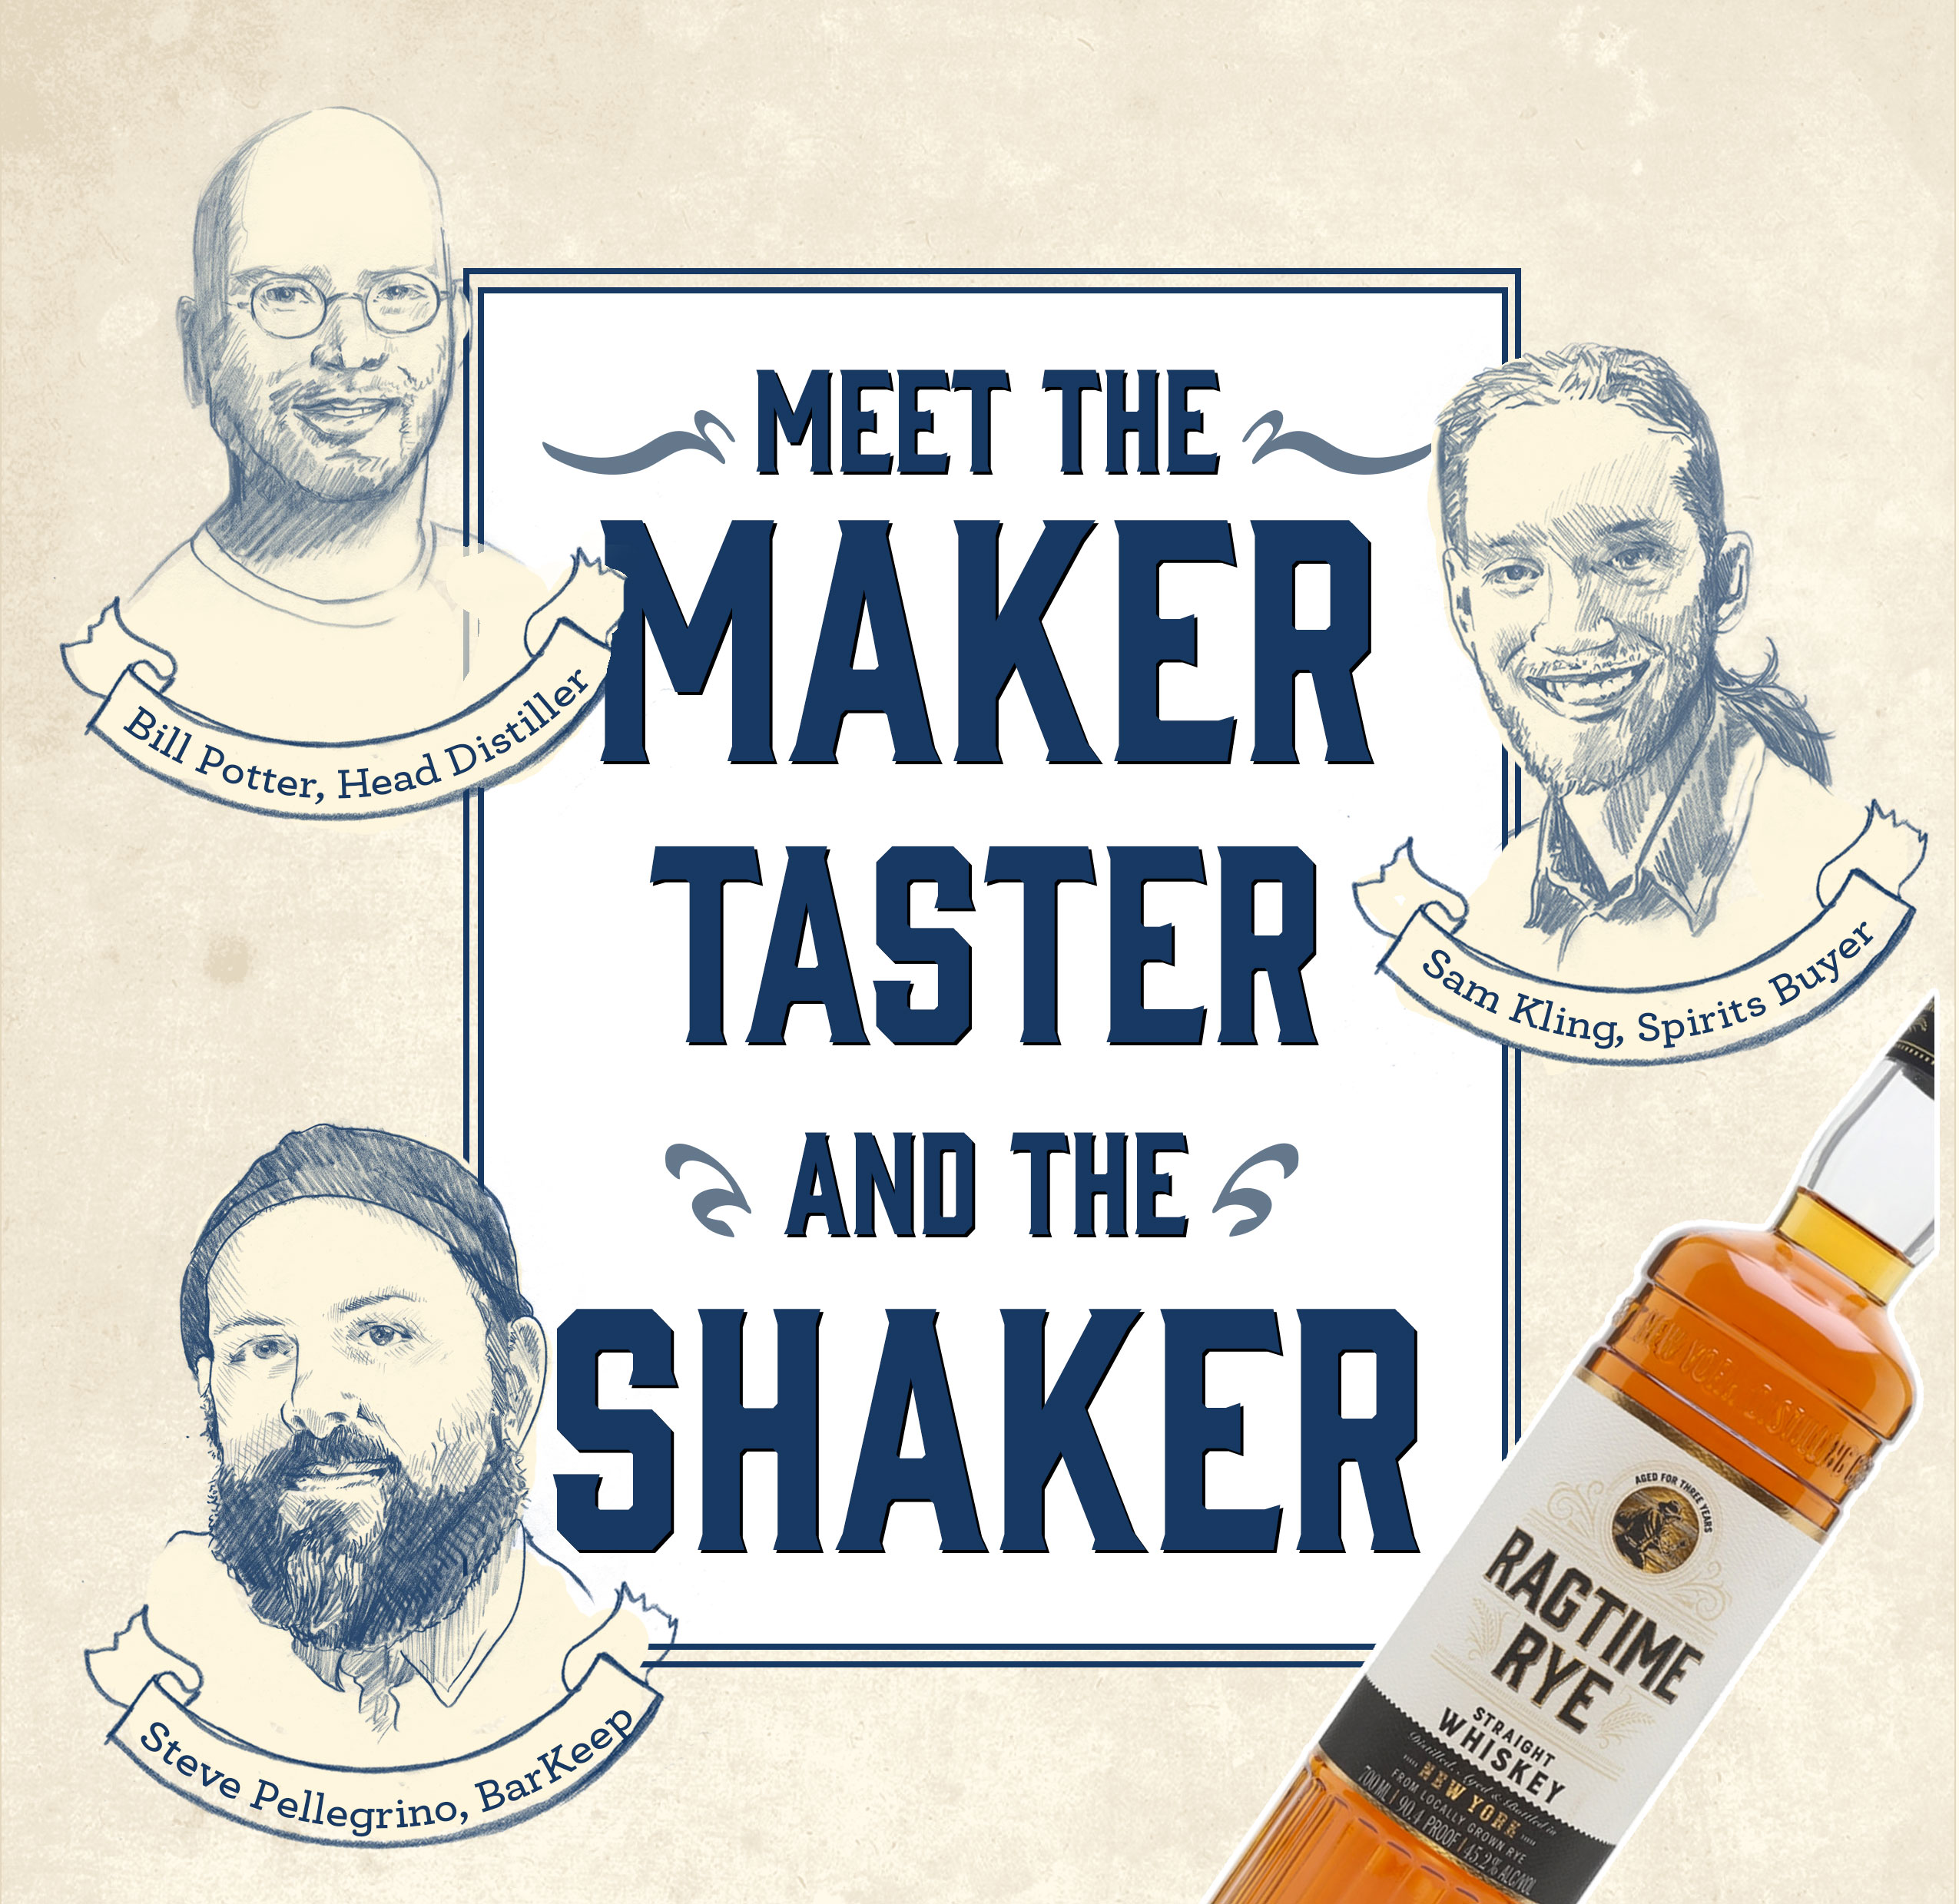 Meet The Maker, The Taster, and The Shaker!